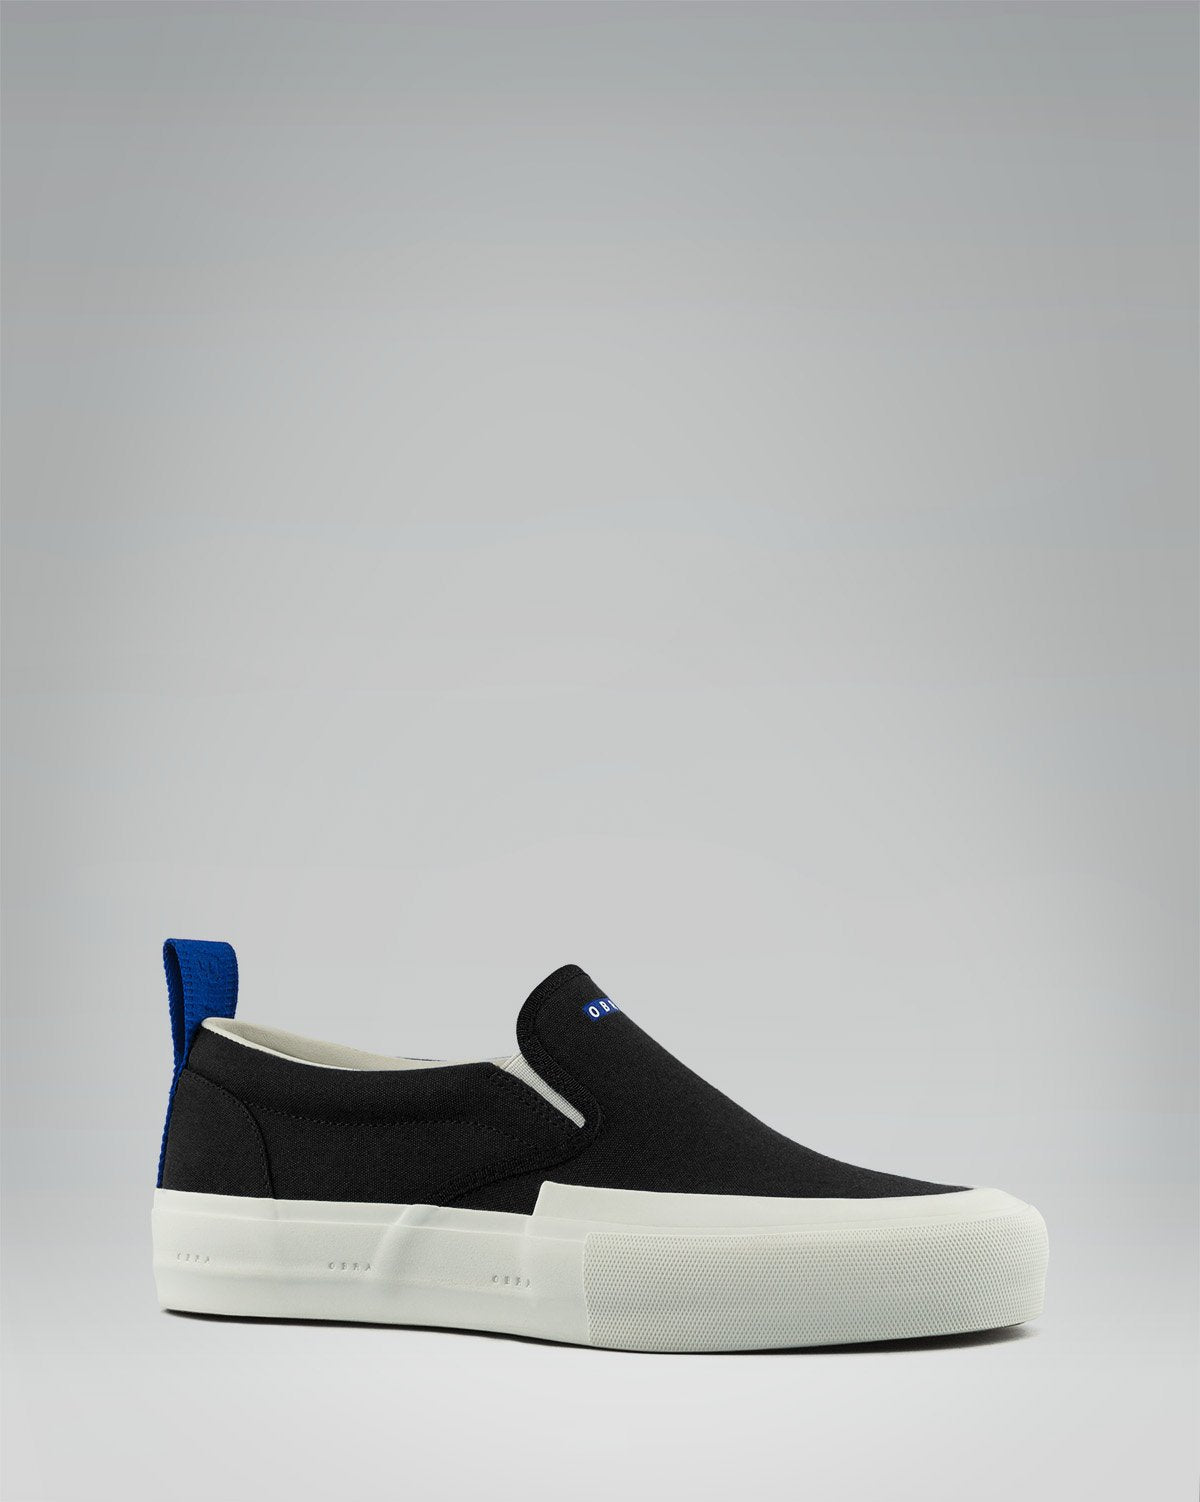 240 CANVAS SLIP-ON WRAP TOE <br/> Black/White/OBRA Blue